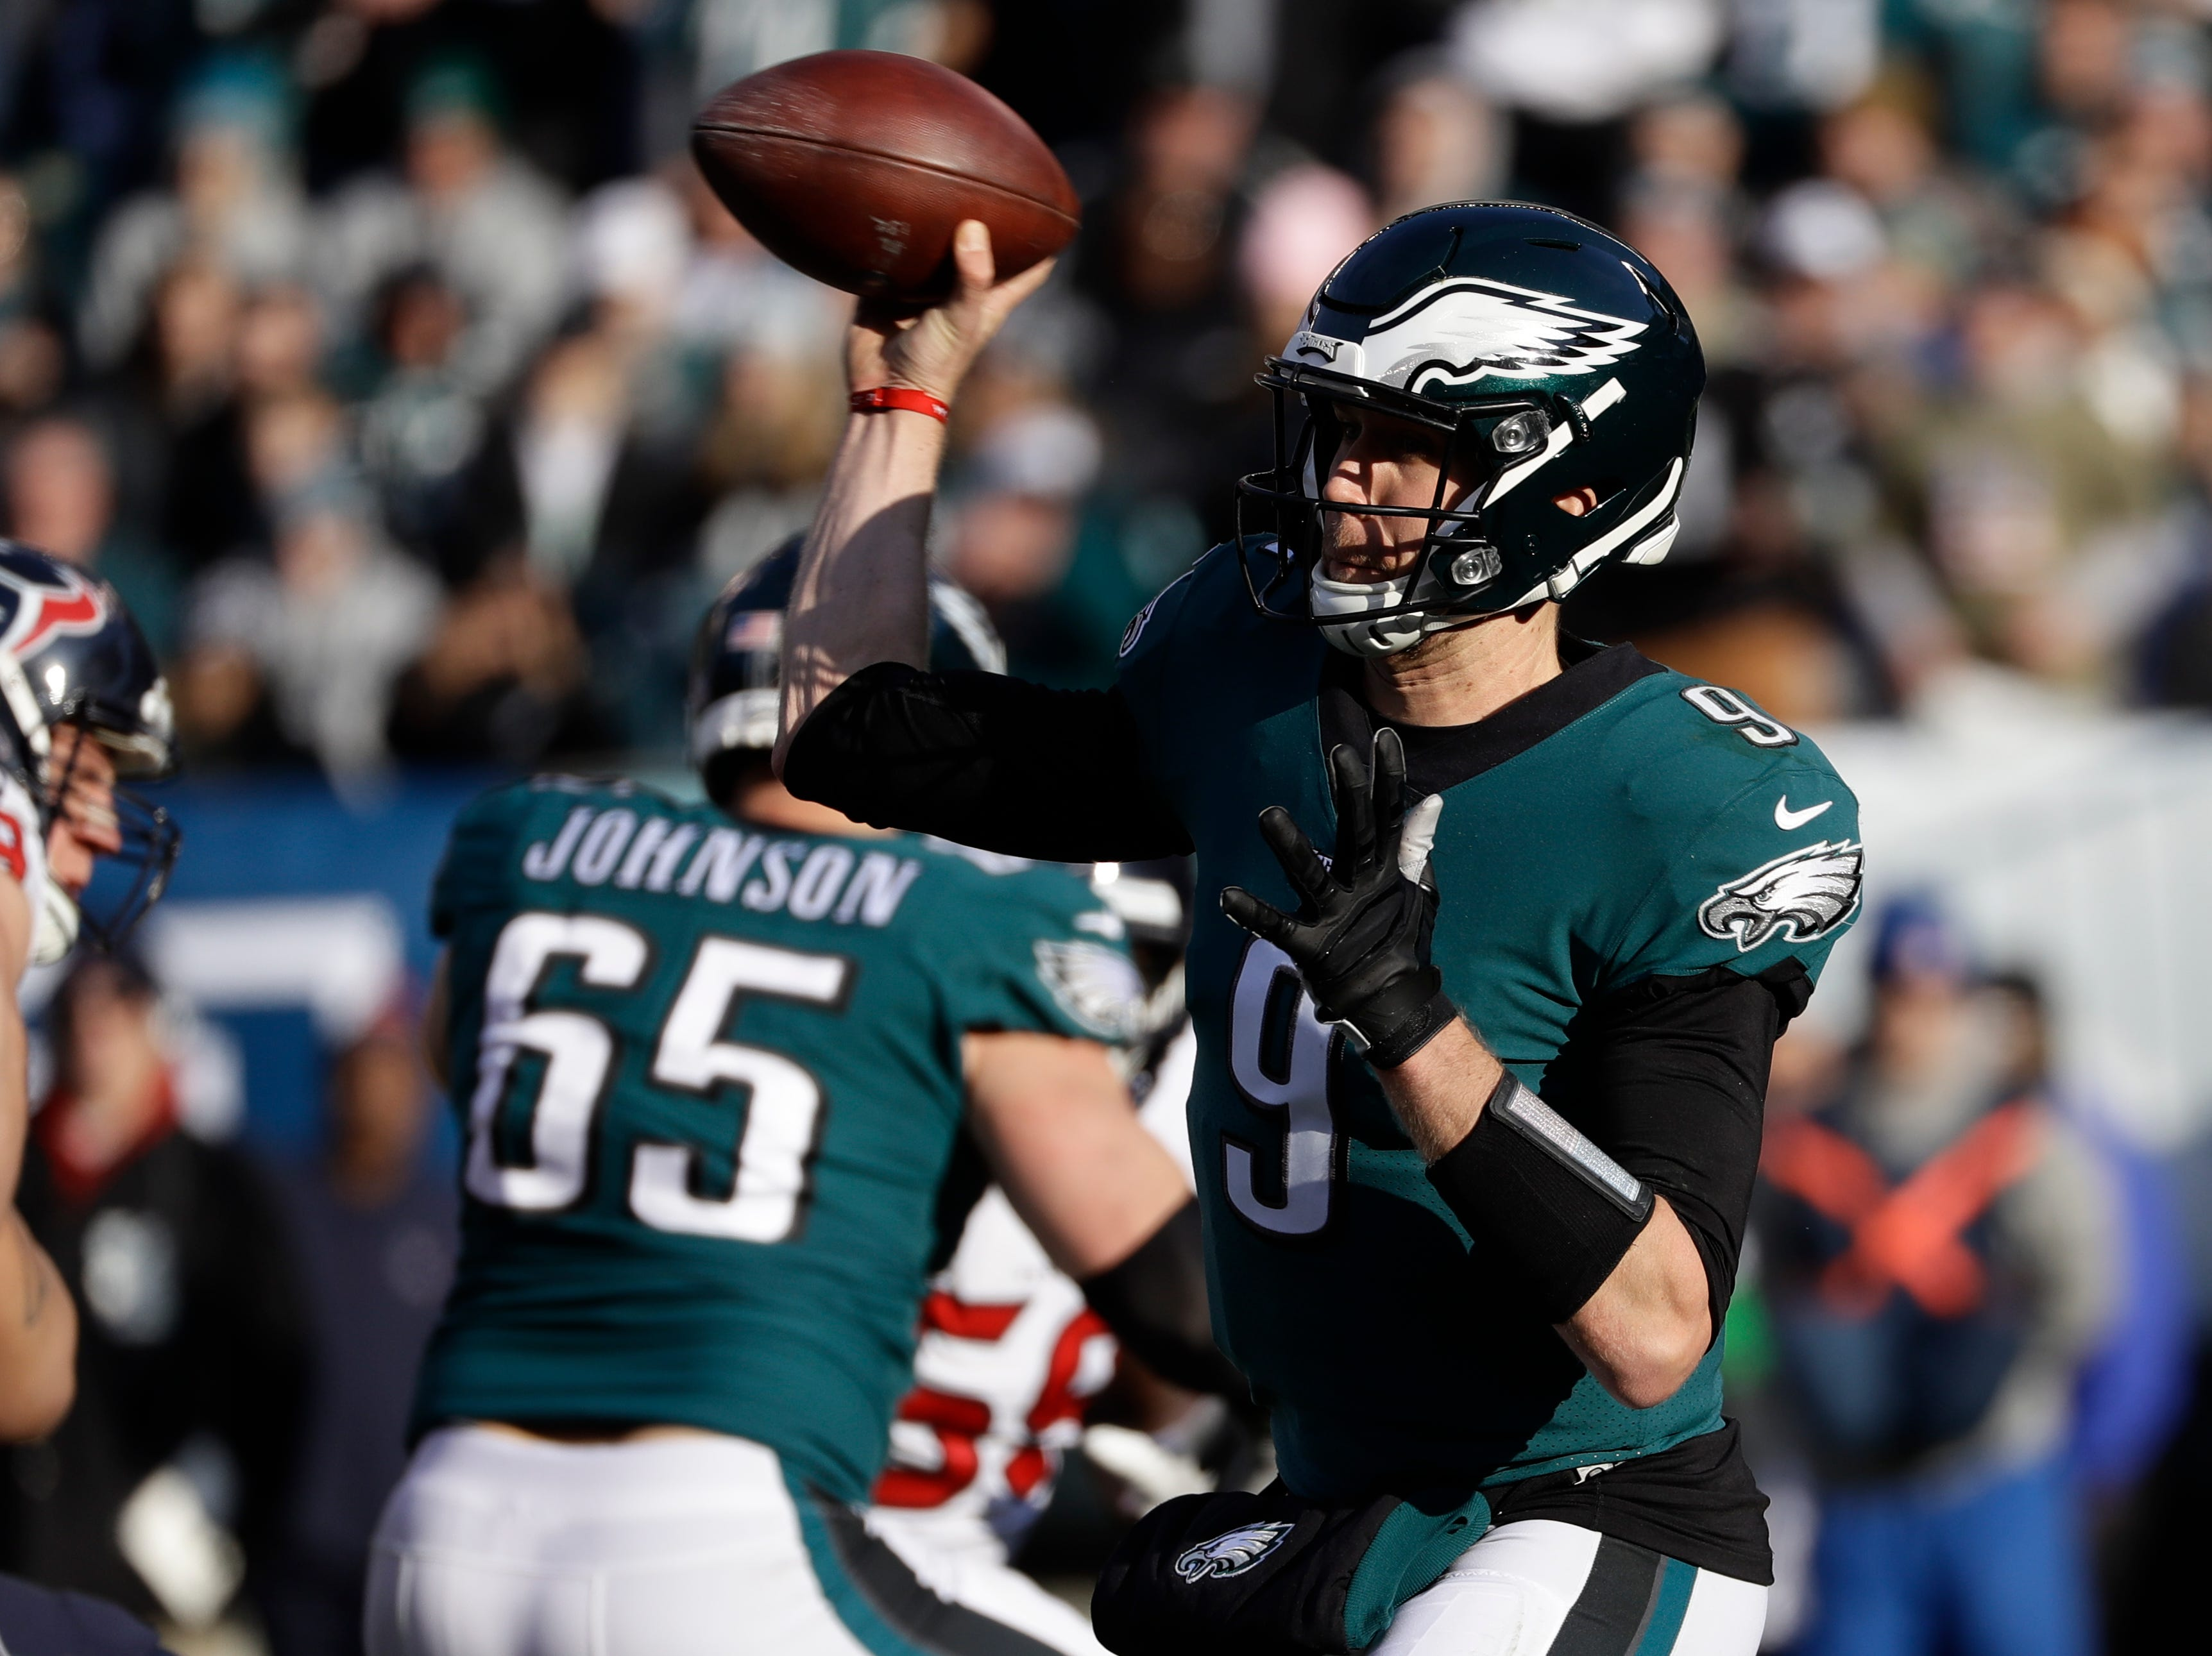 Philadelphia Eagles' Nick Foles in action during the first half of an NFL football game against the Houston Texans, Sunday, Dec. 23, 2018, in Philadelphia. (AP Photo/Michael Perez)